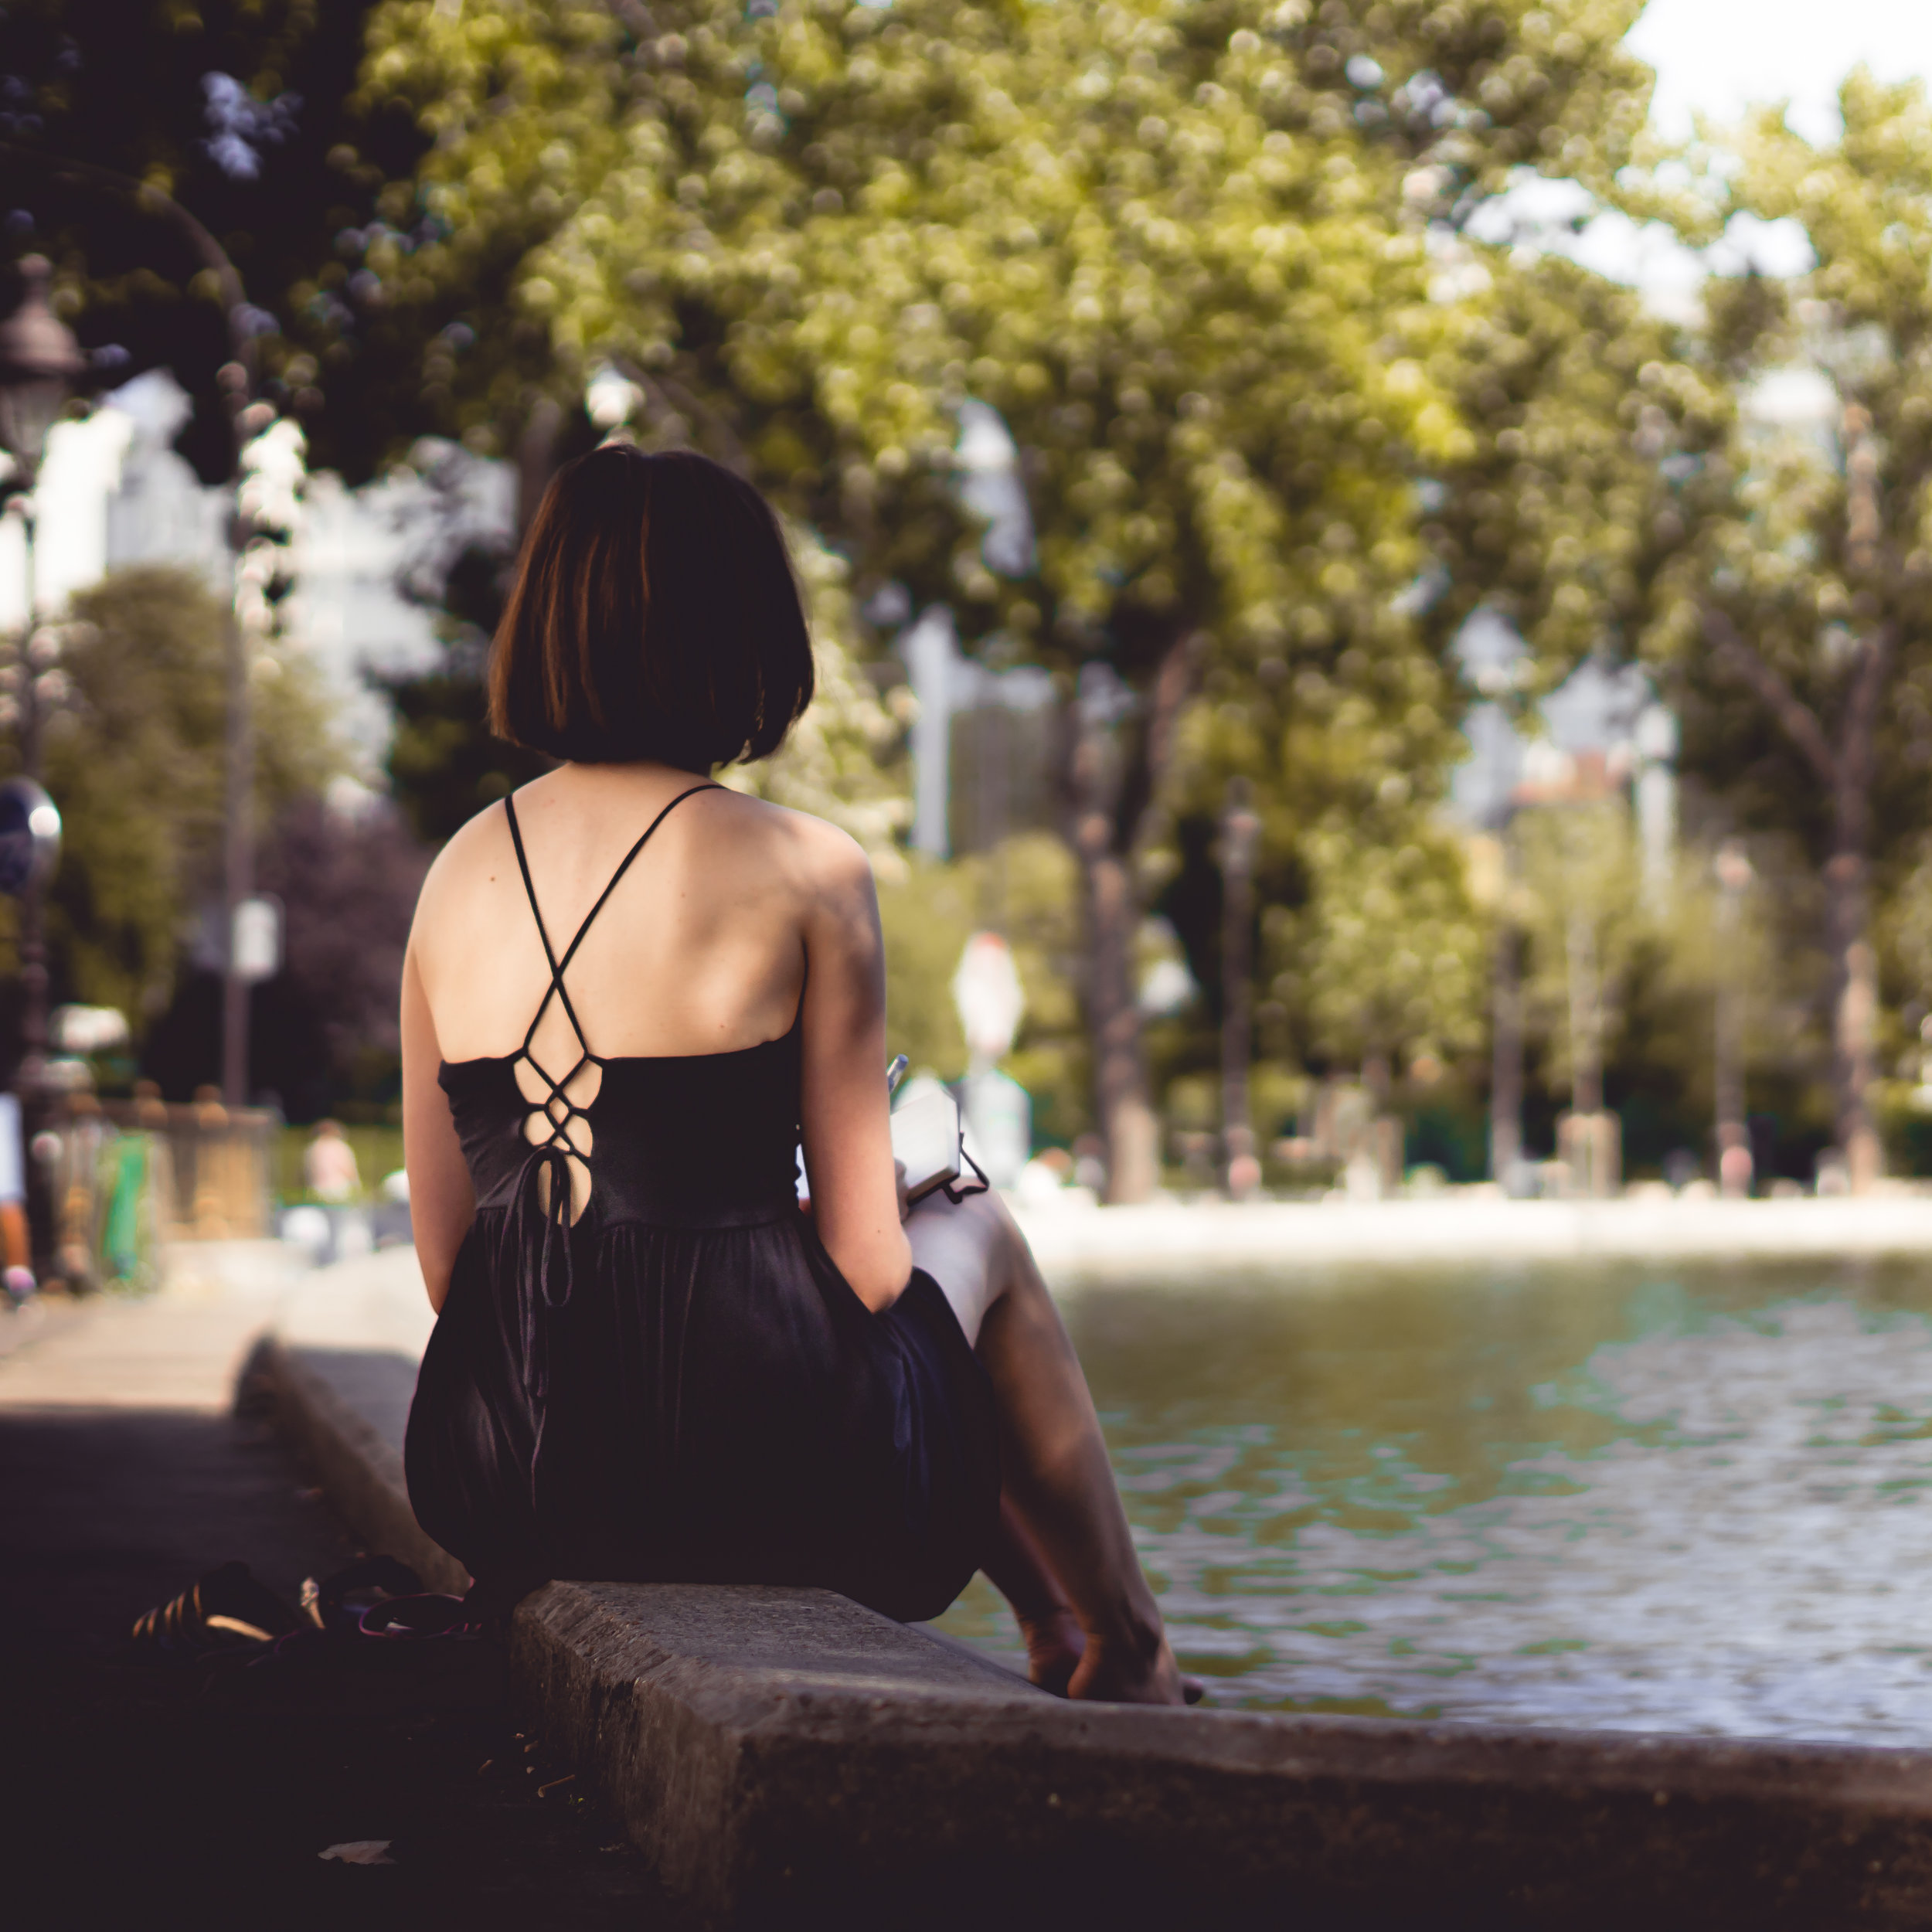 Girl by the canal-2.jpg